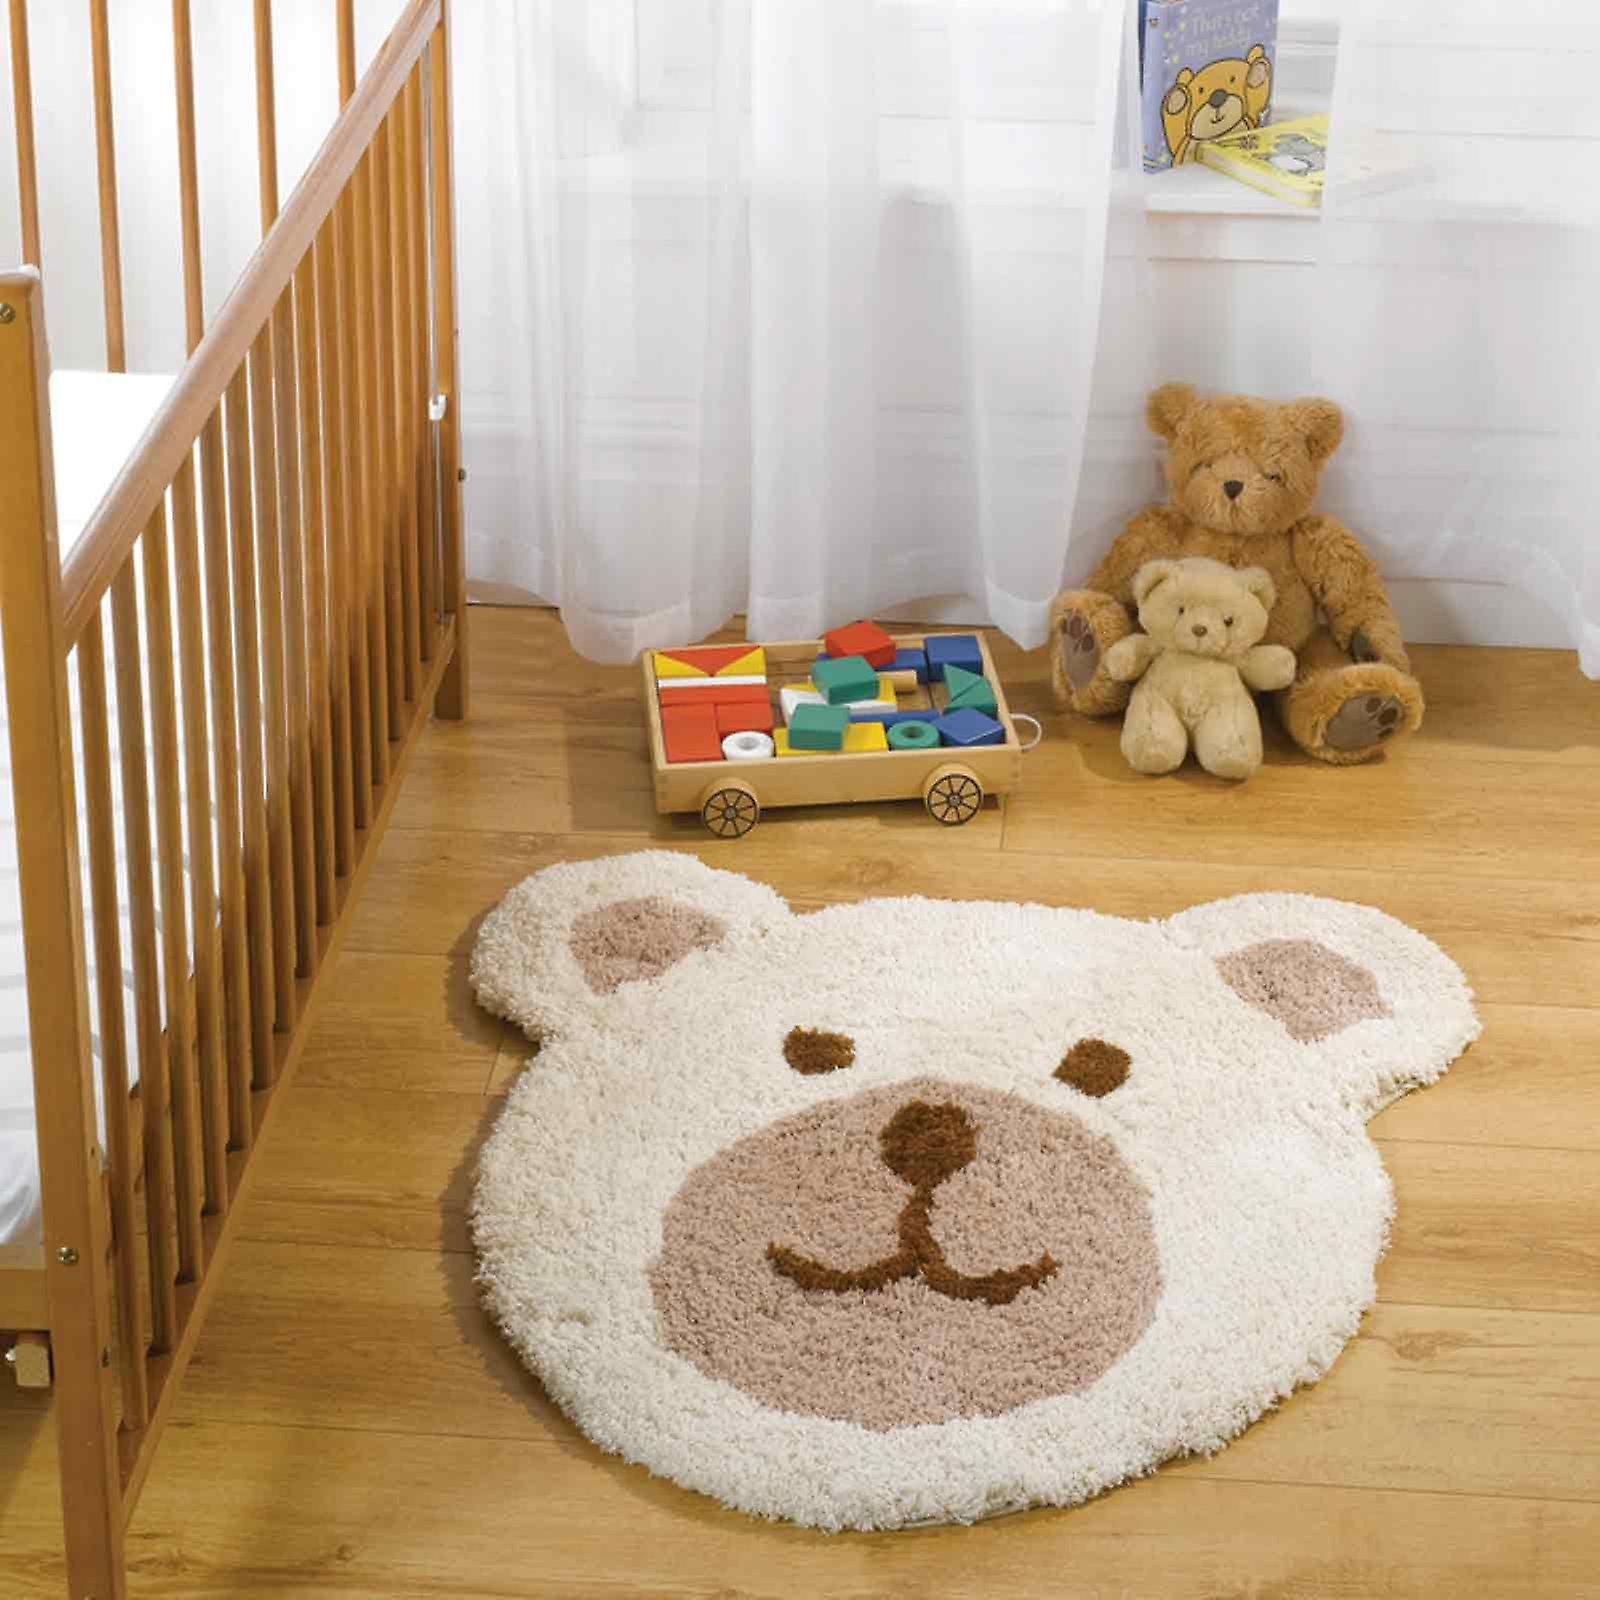 The Teddy Bear Nursery Rug features a soft, fleecy design that is ideal for baby's rooms. Our Nursery Rugs are Handmade with a soft, 100% polyester pile that is designed to offer comfort and enjoyment for childrens bedrooms.